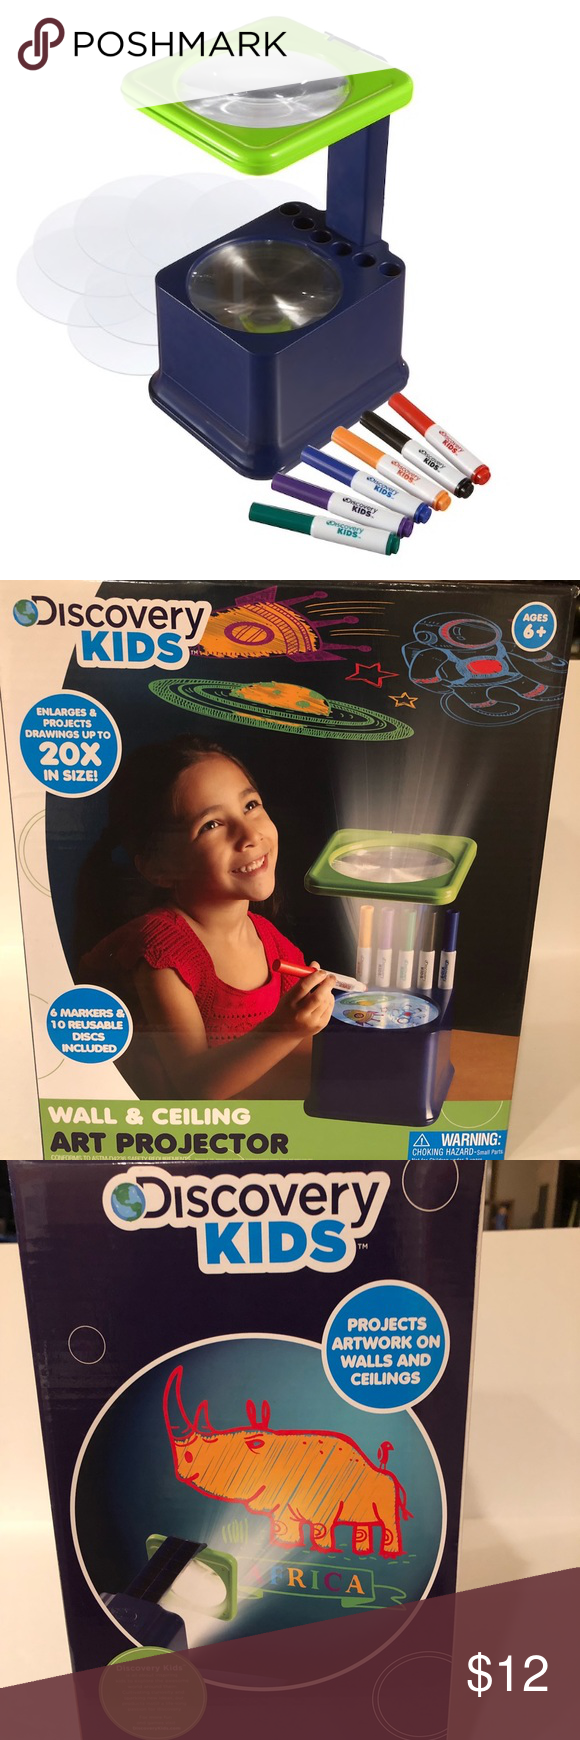 discovery kids wall ceiling art projector in 2018 my posh closet